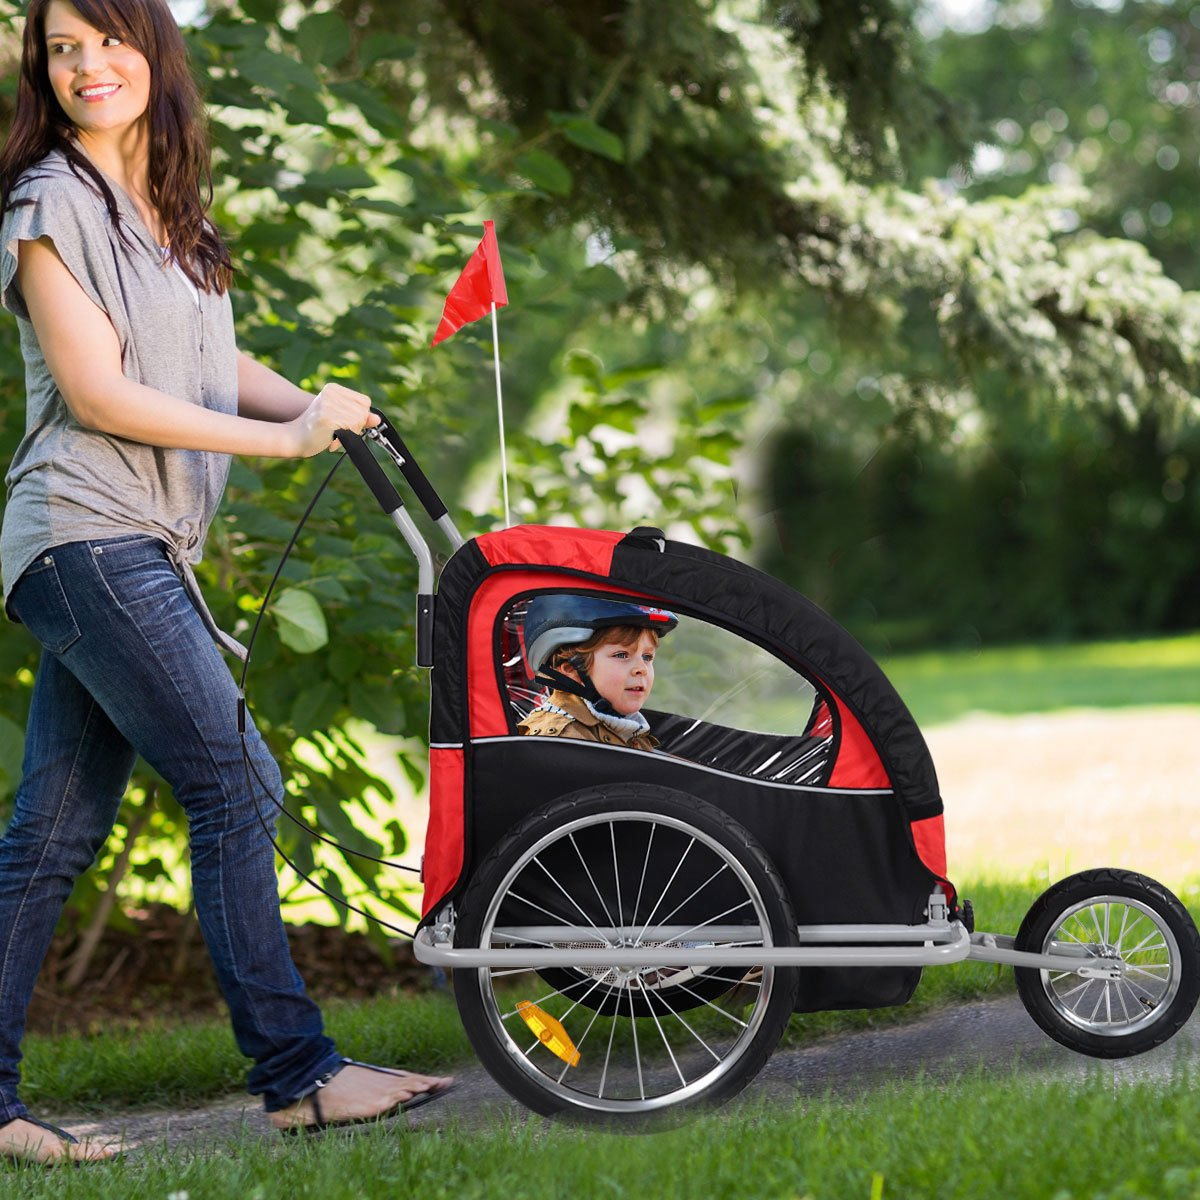 Bicycle Carrier Double Baby Bike Trailer Jogger Stroller 2 in 1 by Caraya (Image #5)